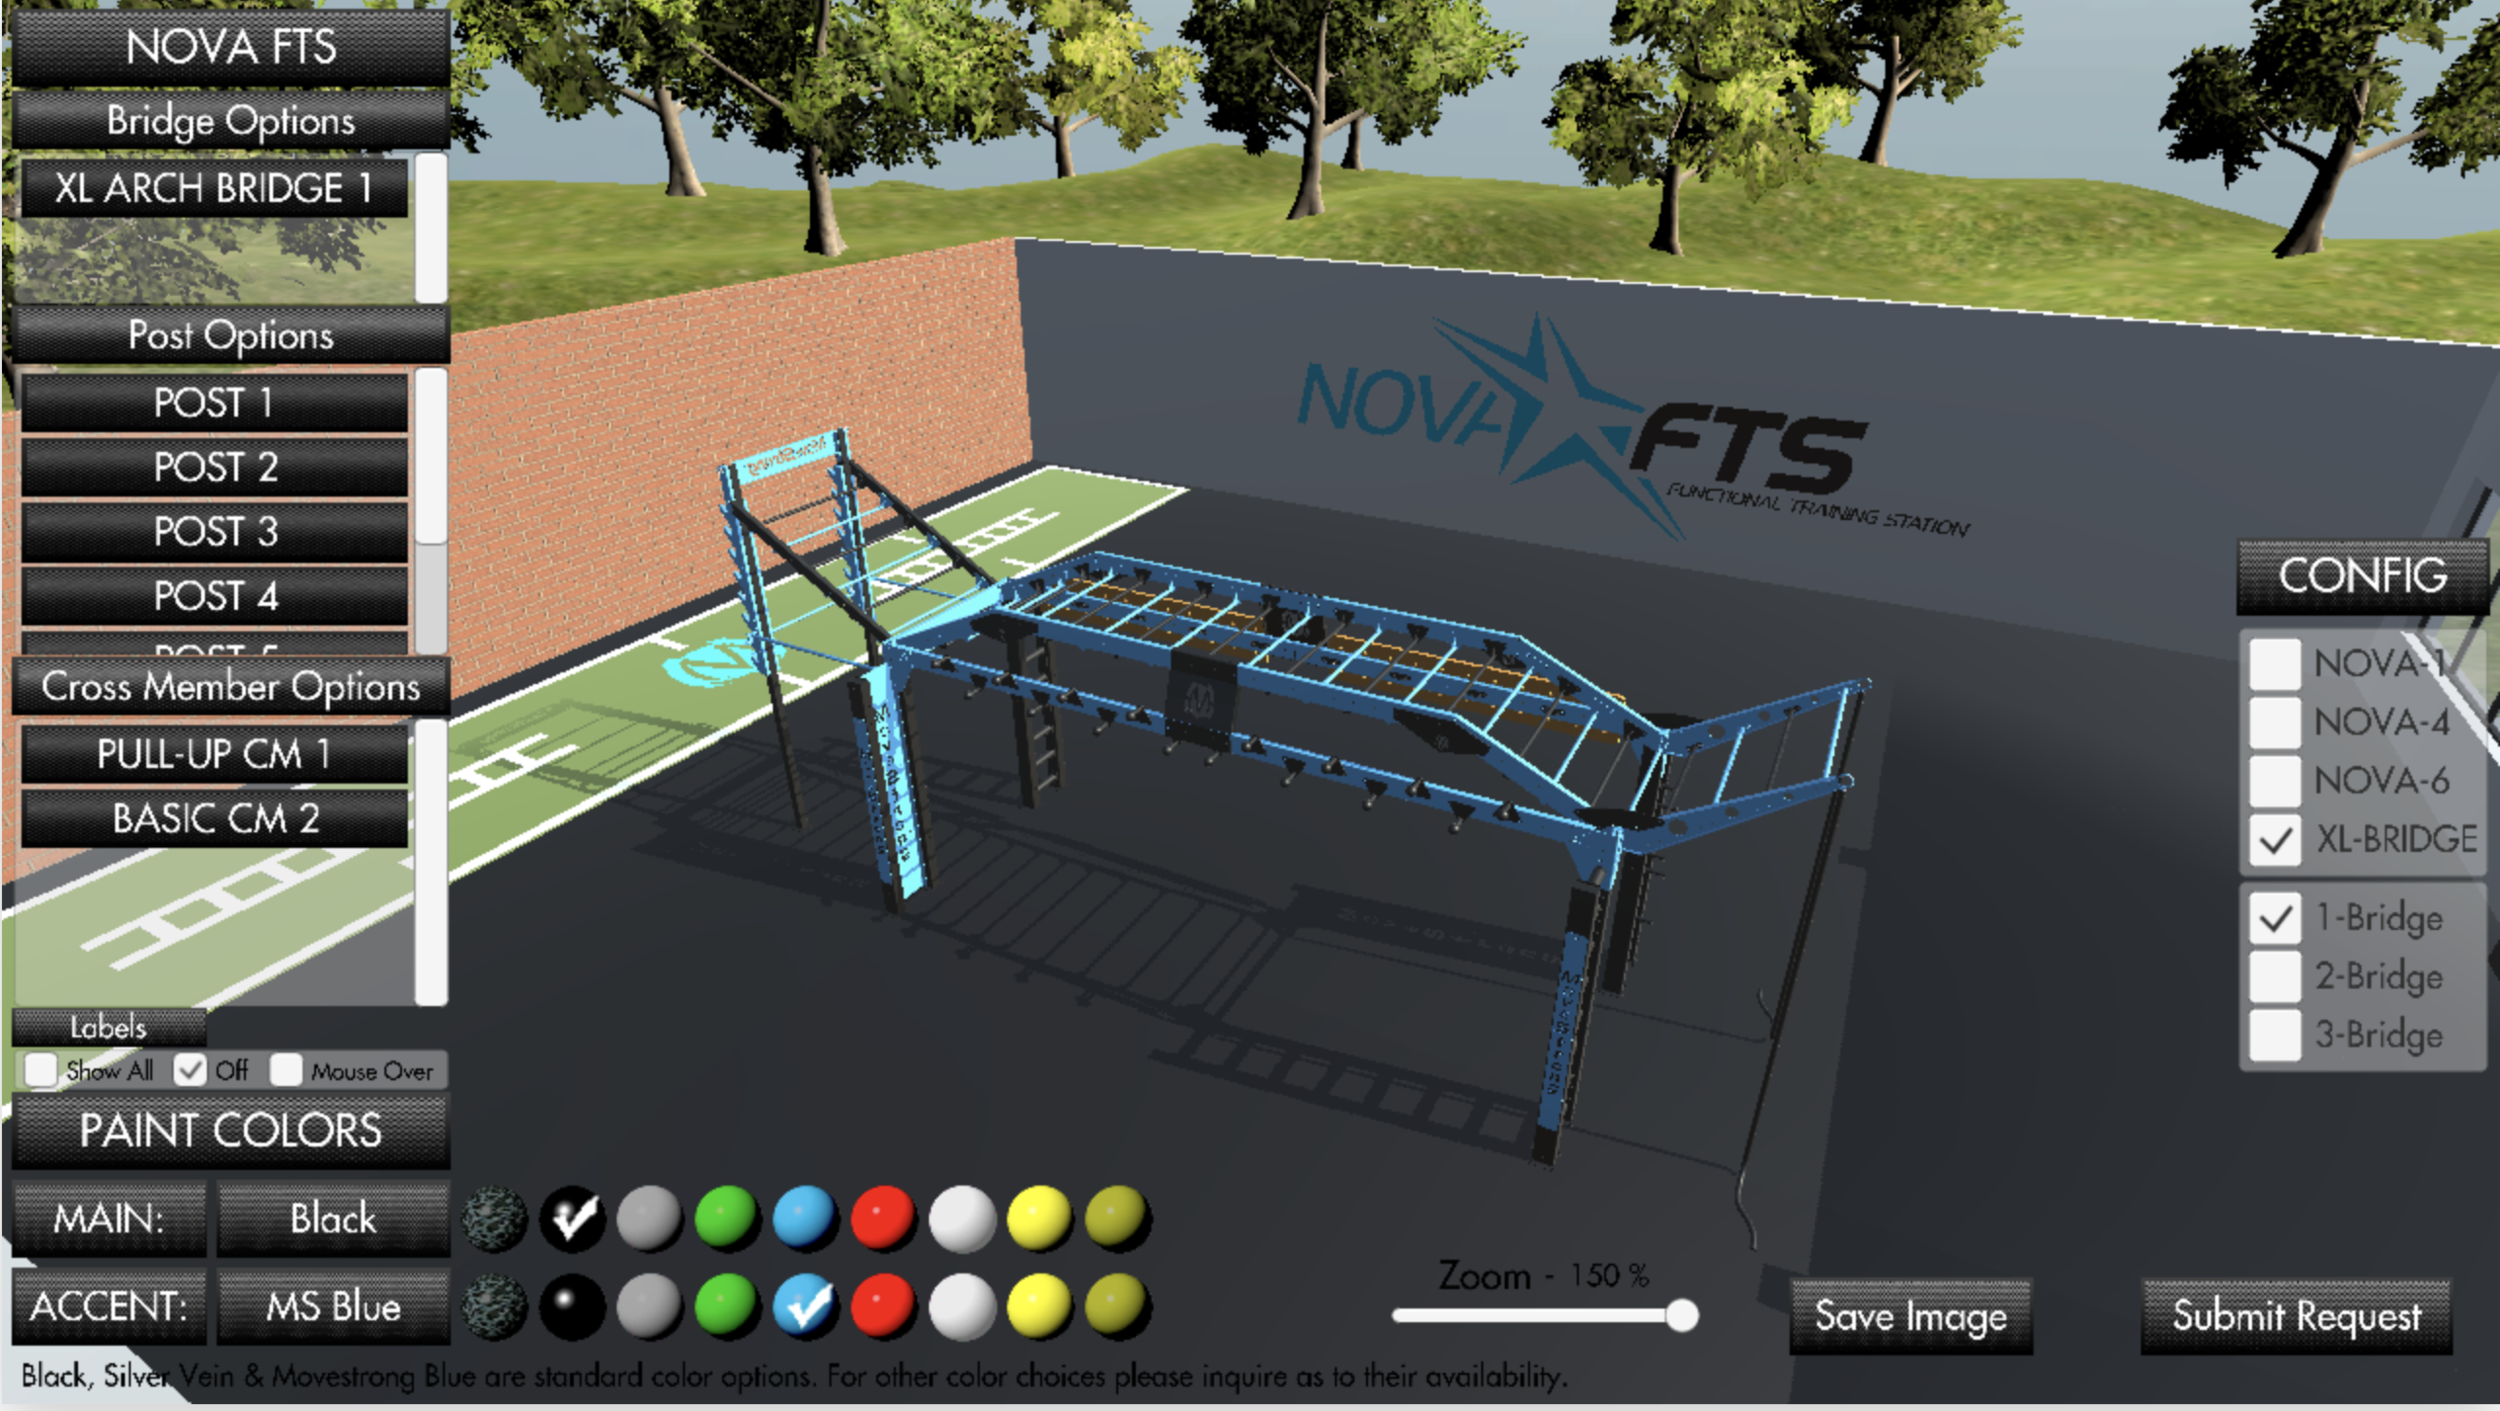 BUILD YOUR OWN 3D PROGRAM - Use our online 3D animated program to choose the T-Rex FTS model and configure with the options you choose. Build on screen and submit your custom configuration to MoveStrong for a quote. Start now by visiting here.